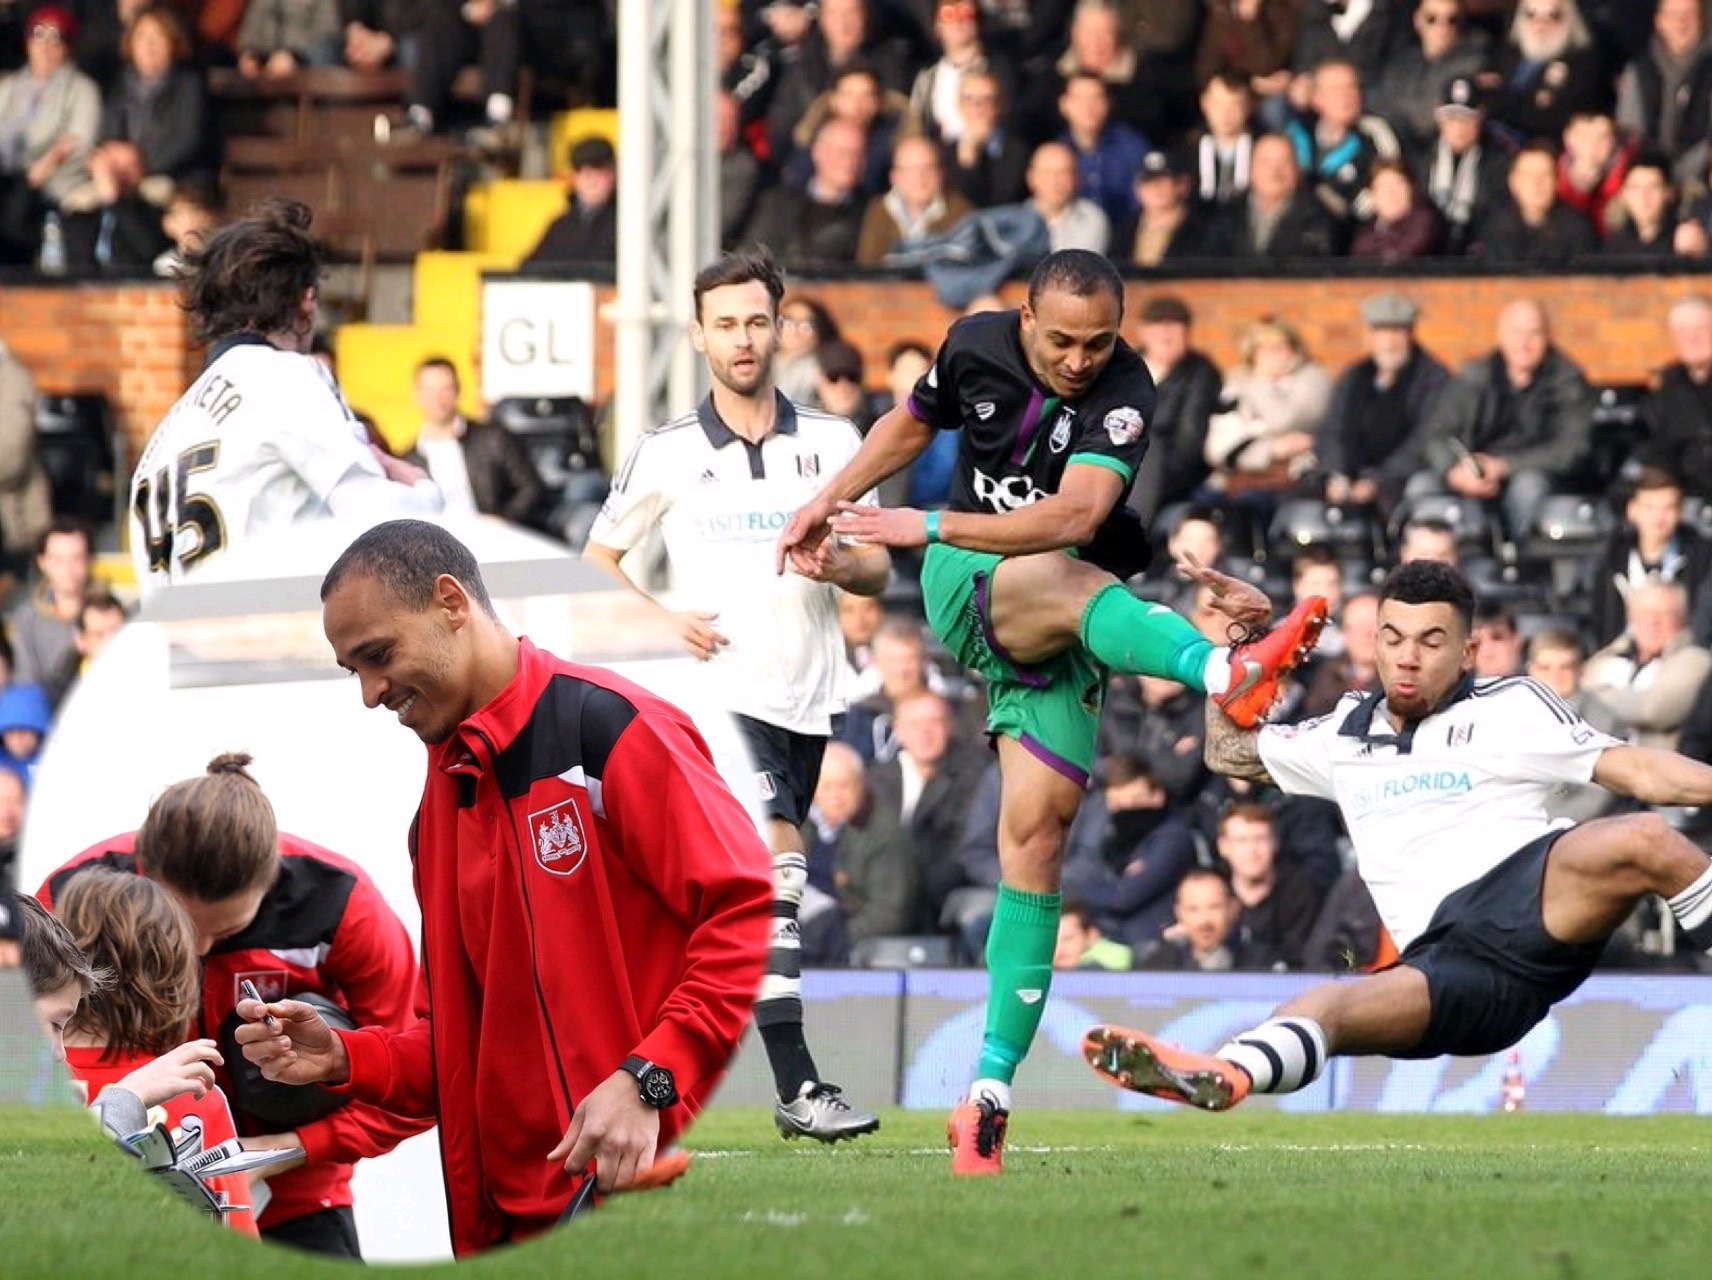 Odemwingie Thrilled To Win On Bristol City Debut